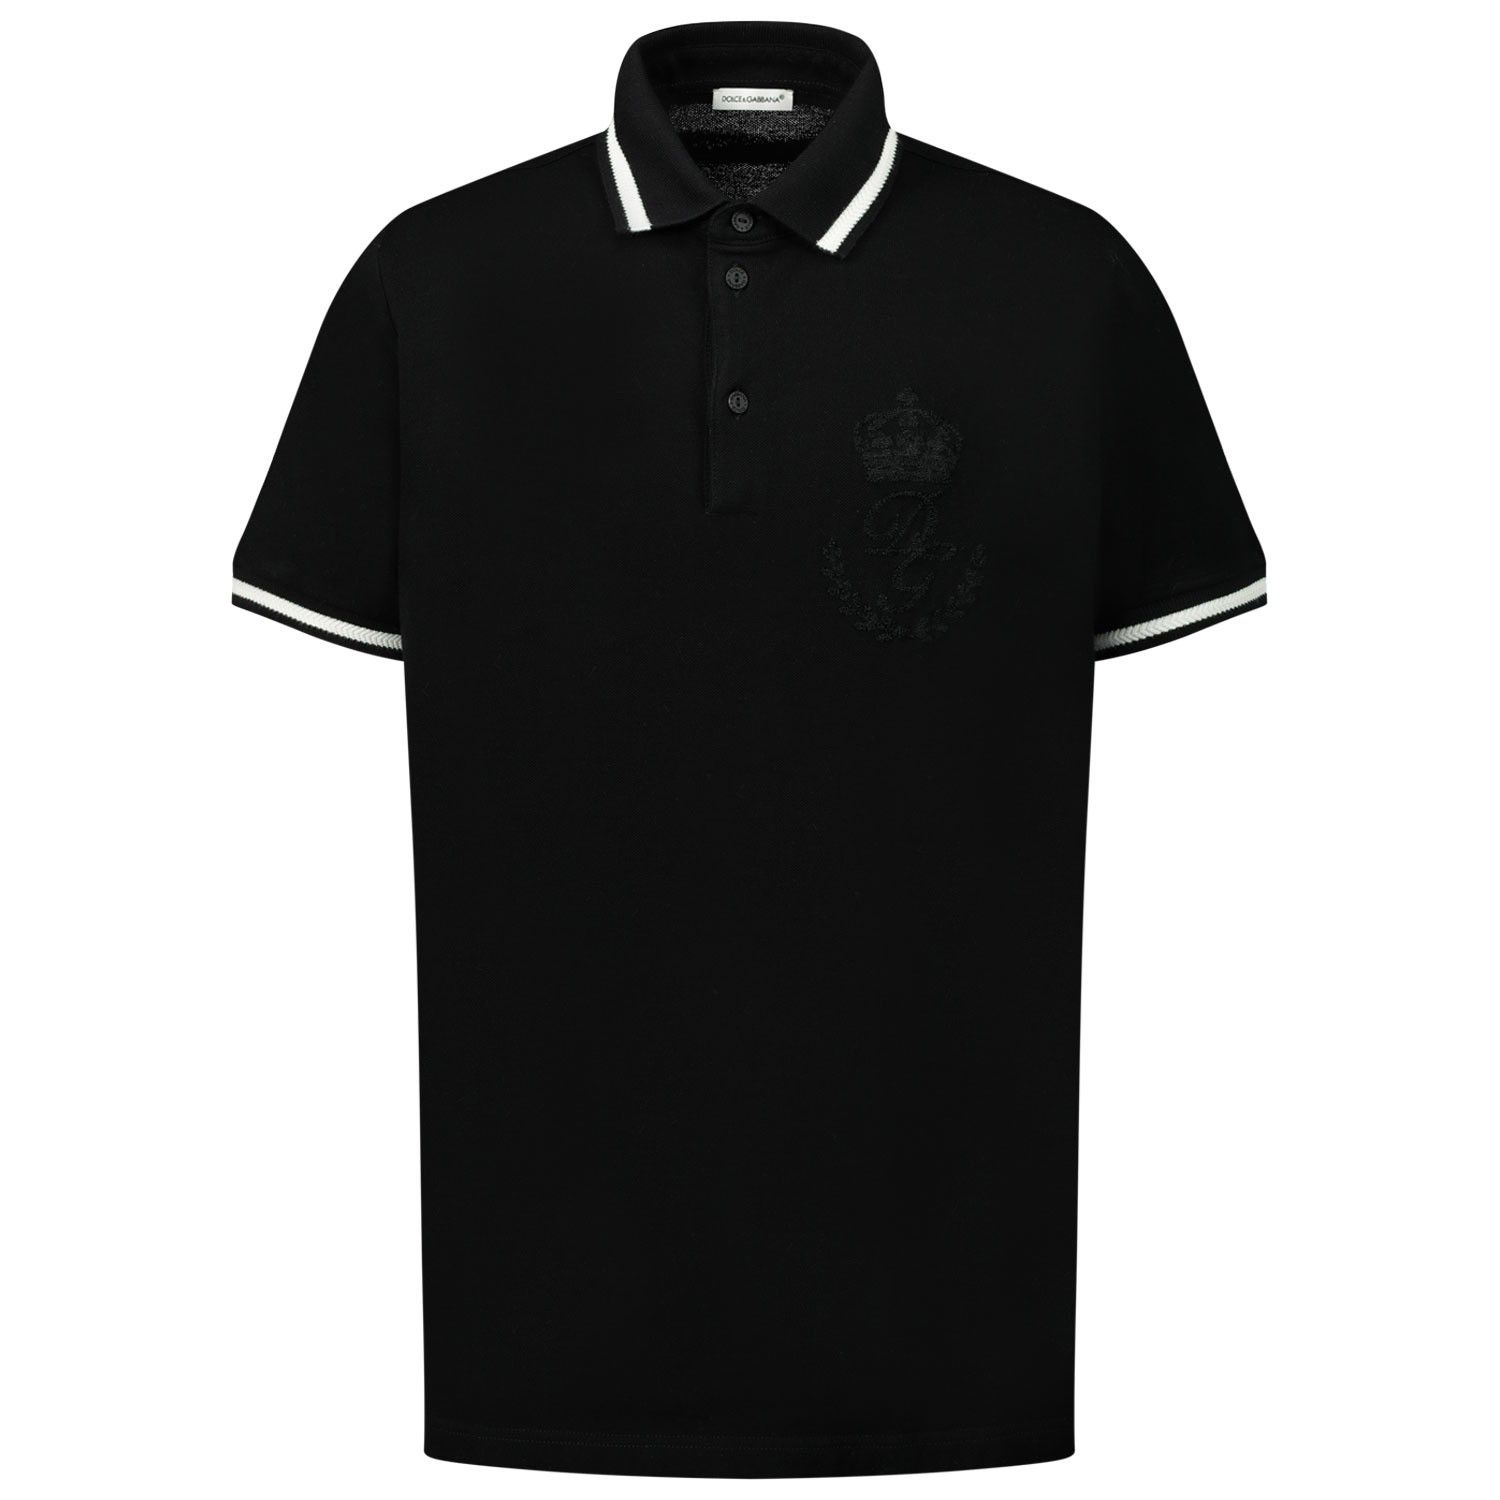 Picture of Dolce & Gabbana L4JT8V / G7VED kids polo shirt black